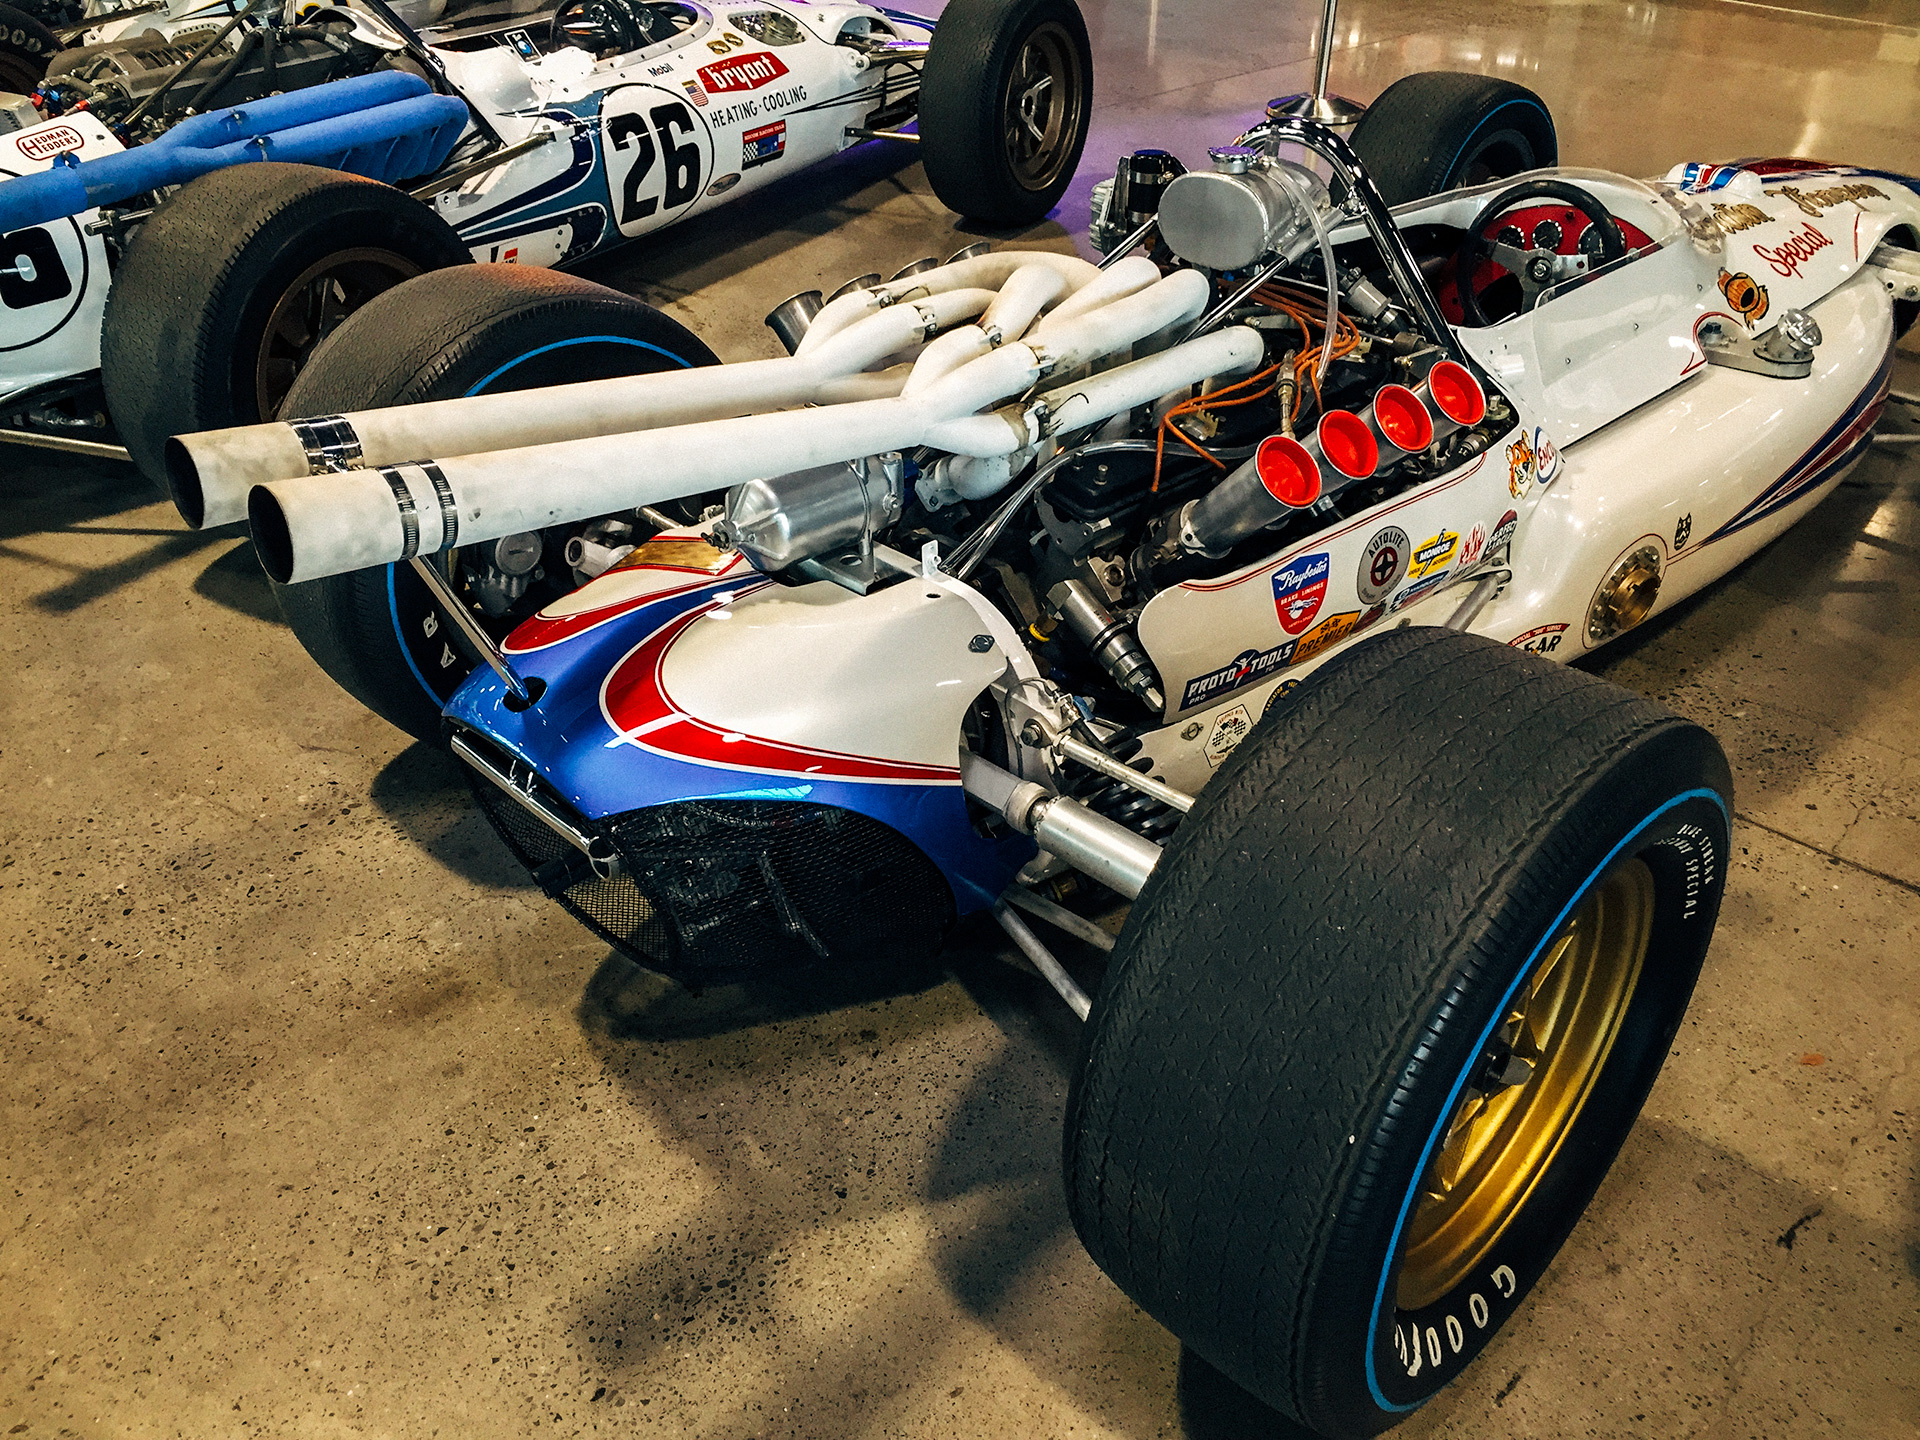 the rear mounted engine on a classic race car at the World of Speed Museum